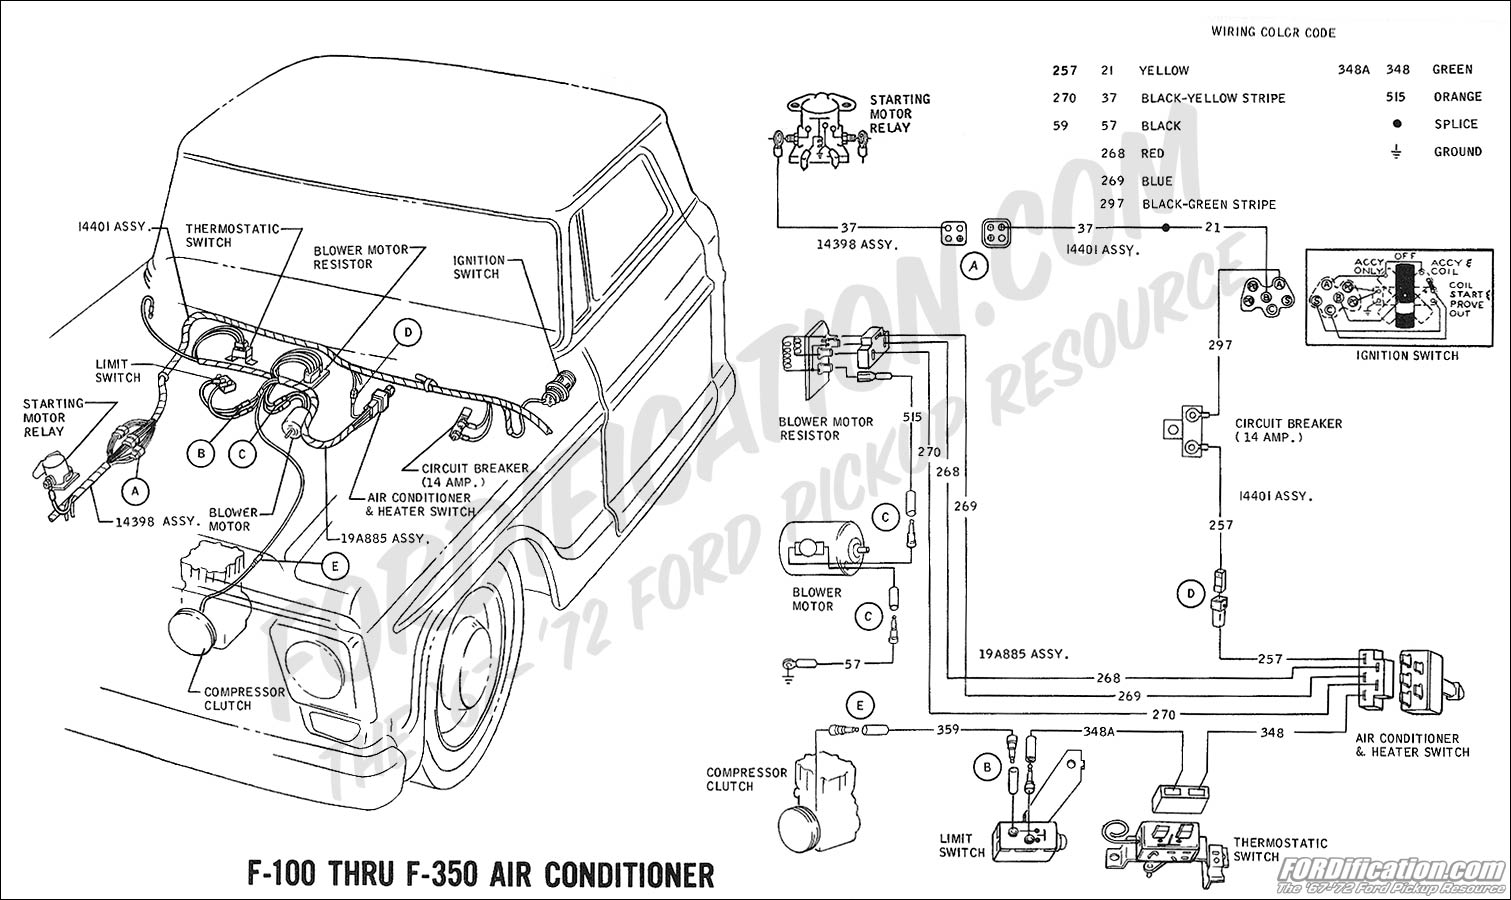 wiring_69ac 1999 ford f 150 radio wiring diagram chevy truck wiring diagram wiring diagram mirrors 2009 ford f150 truck at soozxer.org